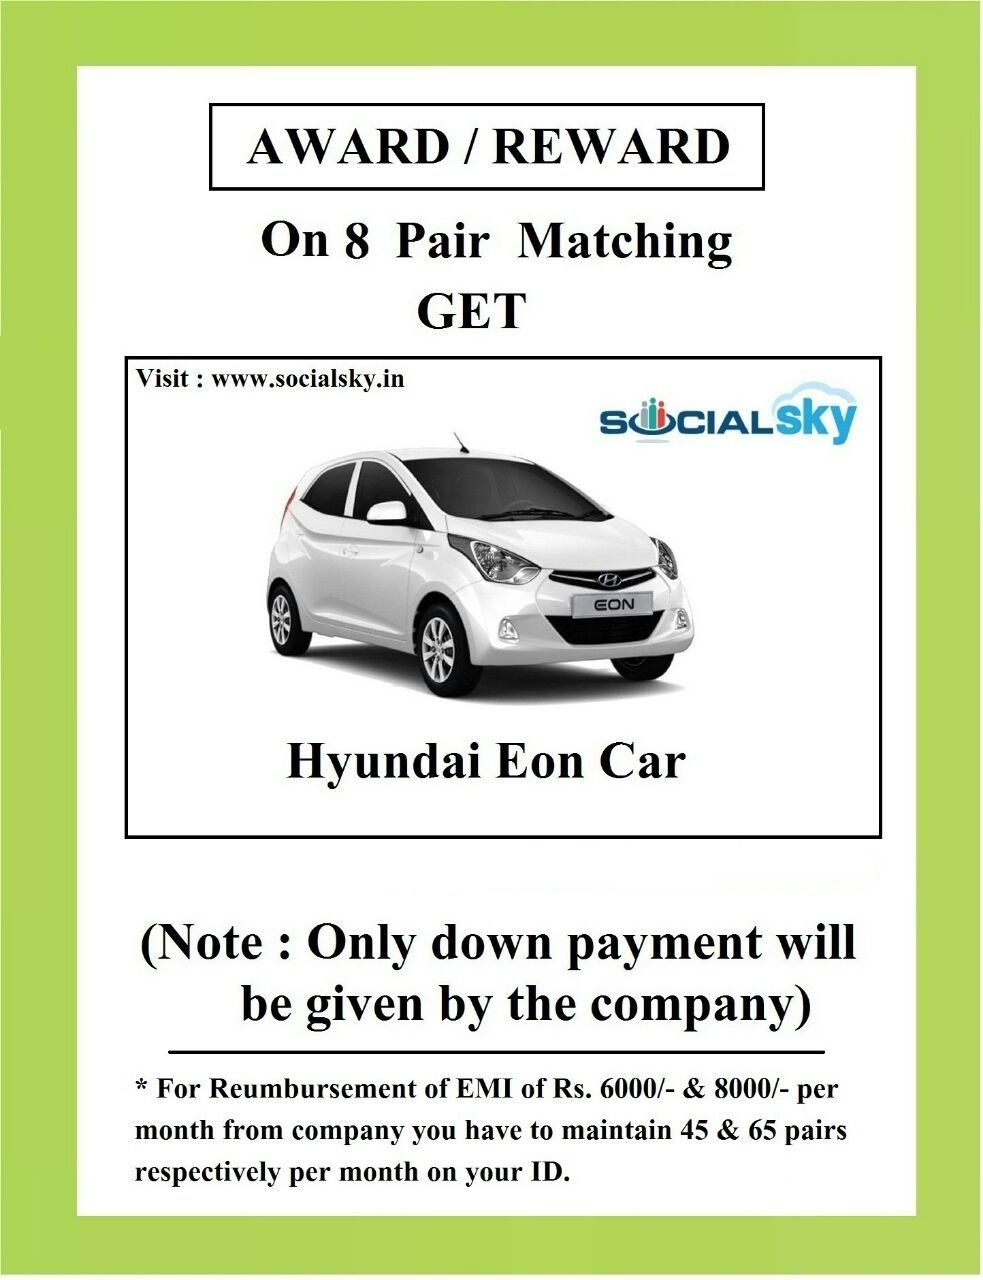 Get Hyundai Eon only 8 Pair